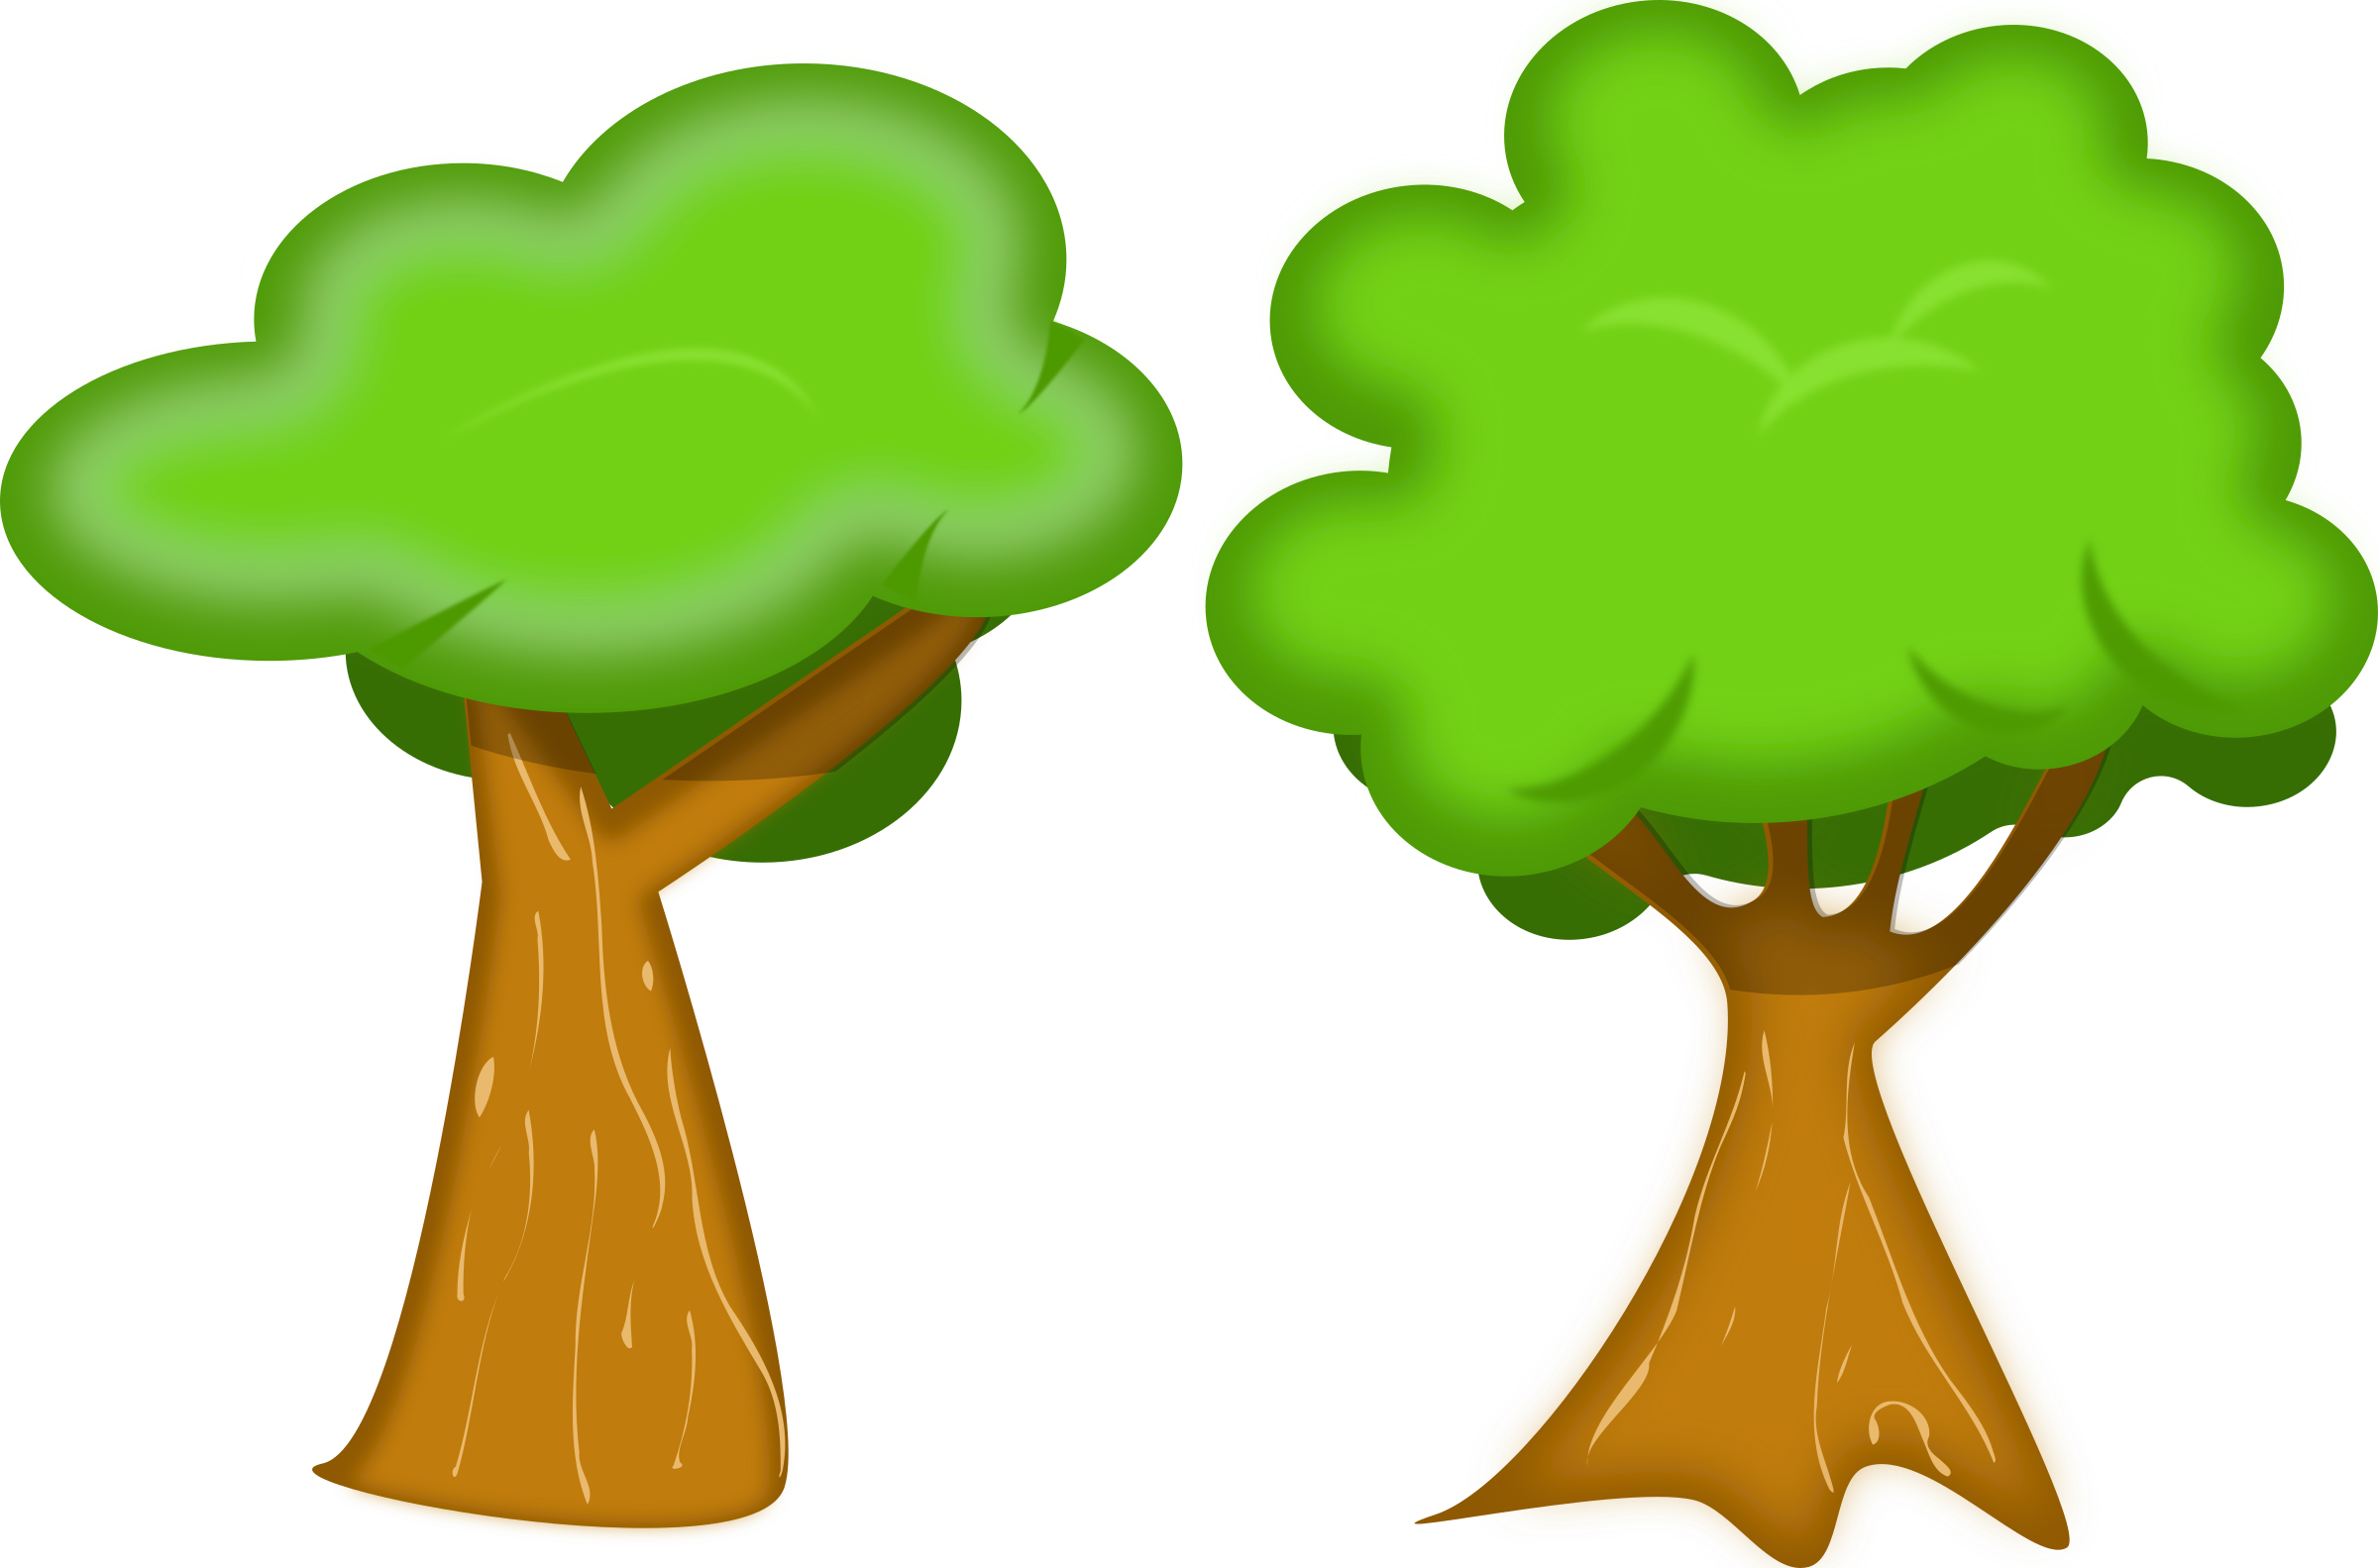 Soft trees icons free. Tree cartoon png vector transparent library